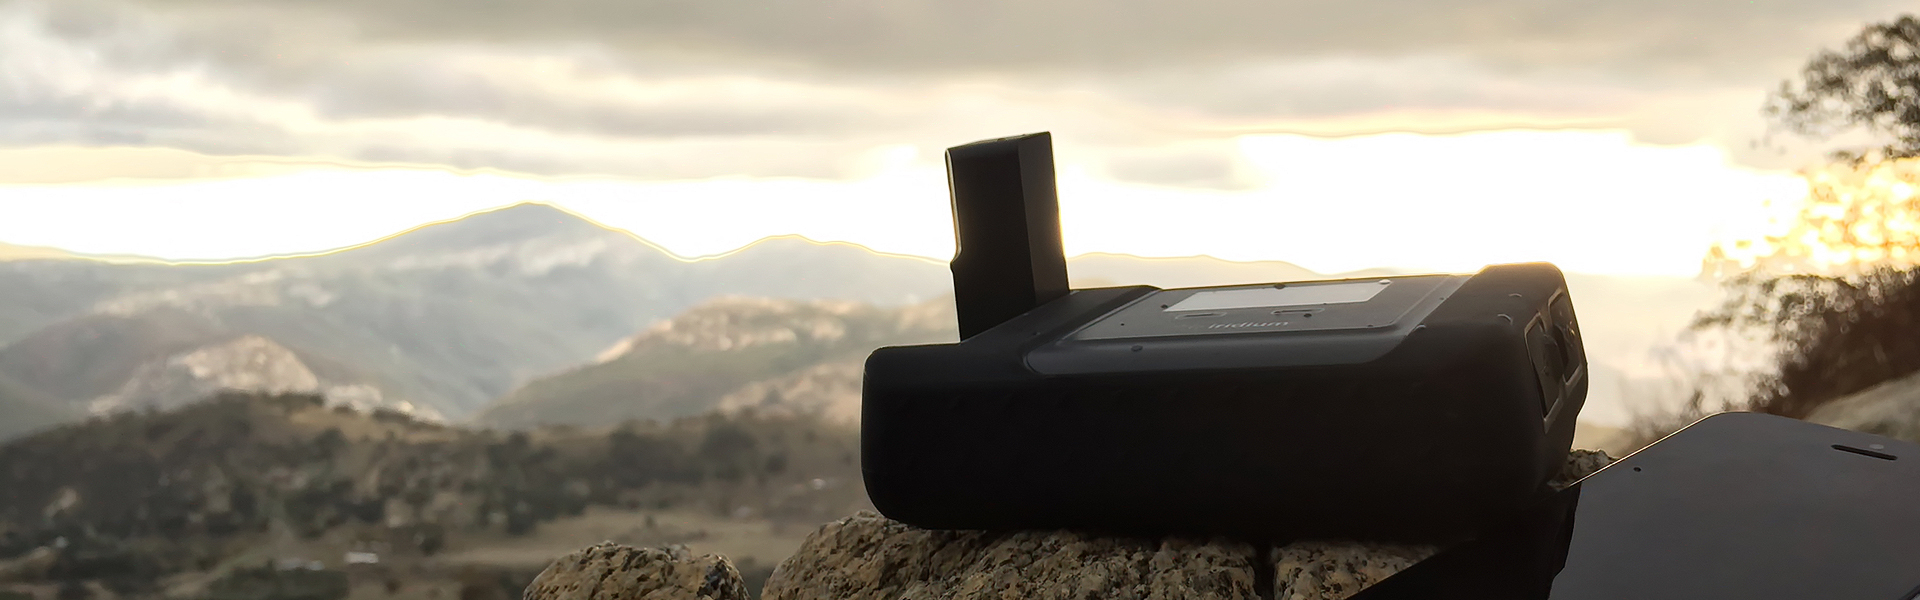 iridium go satellite smartphone wifi hotspot from NorthernAxcess